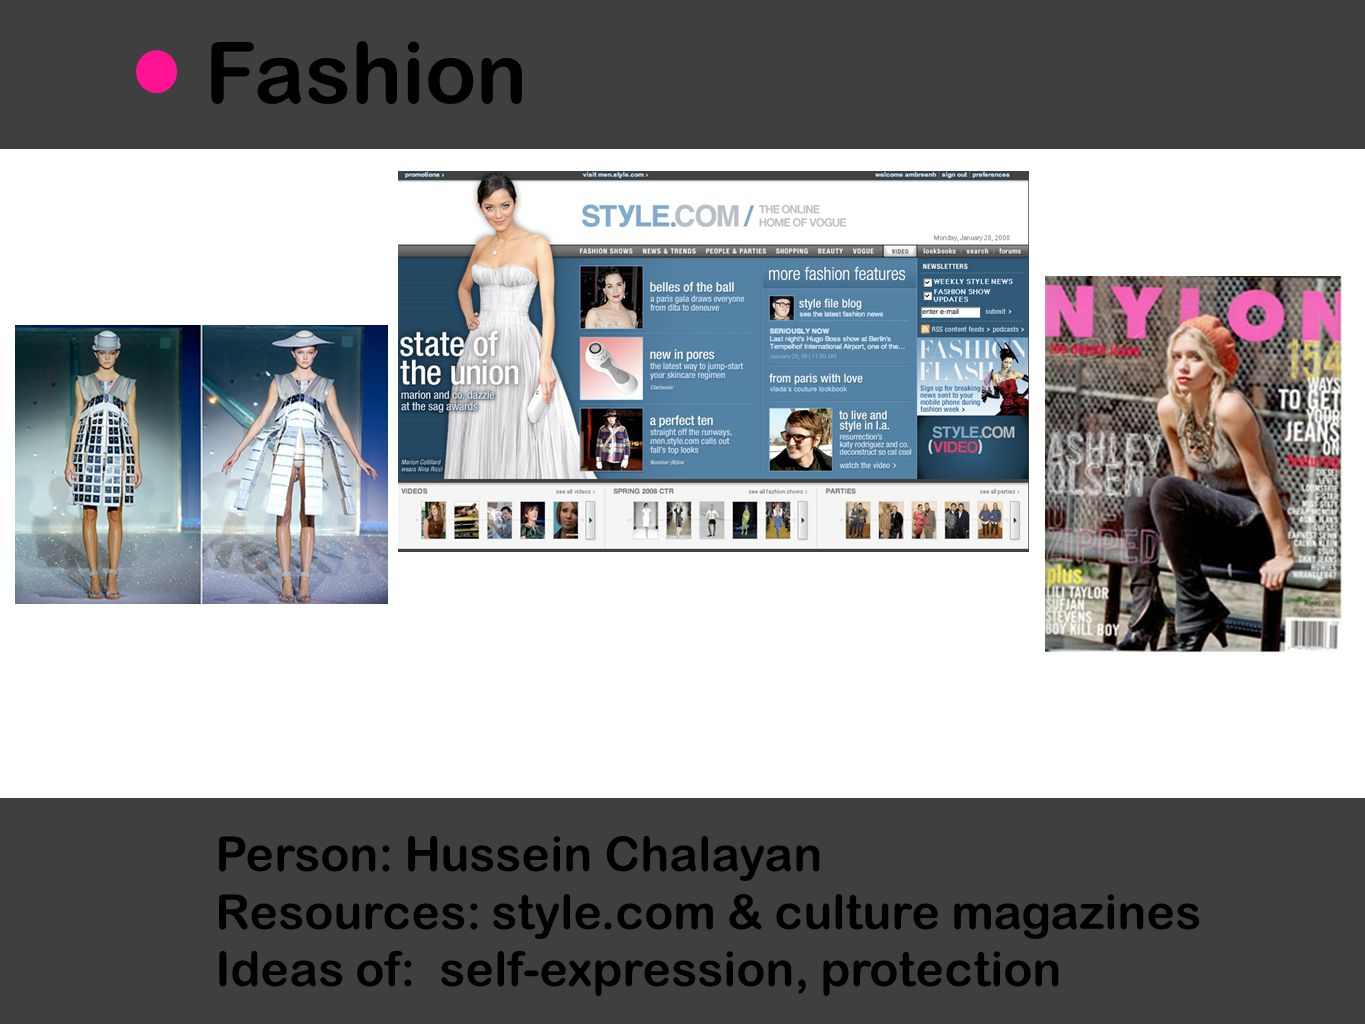 Person: Hussein Chalayan Resources: style.com & culture magazines Ideas of: self-expression, protection